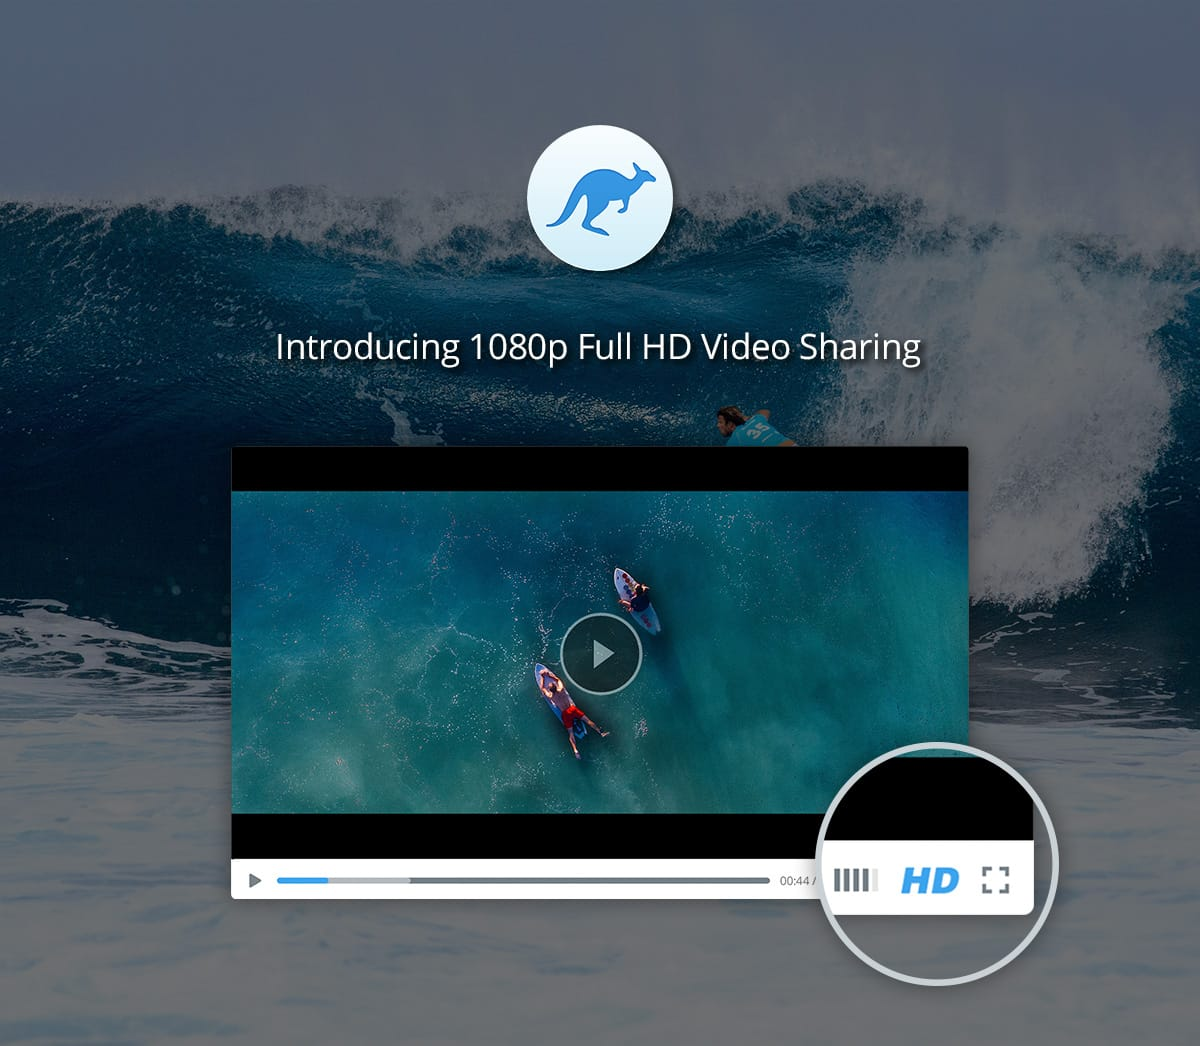 Full HD video sharing